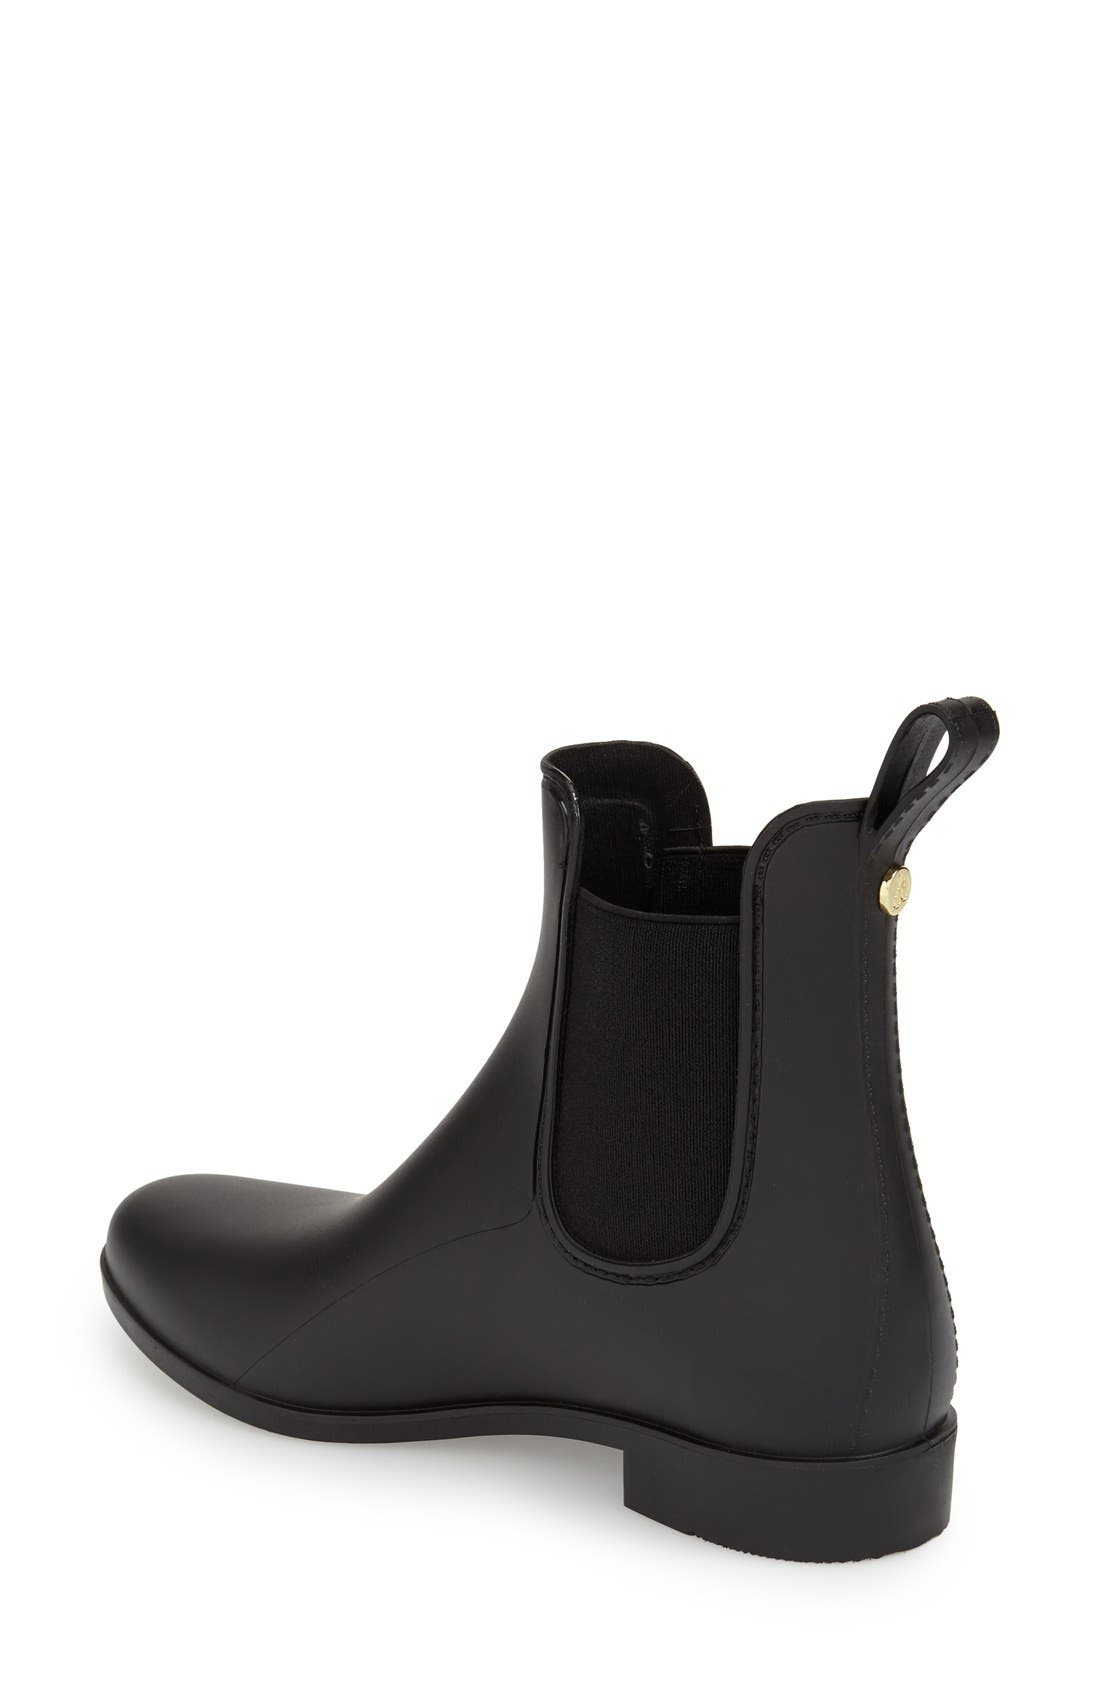 'Tinsley' Rain Boot,                             Alternate thumbnail 2, color,                             Matte Black